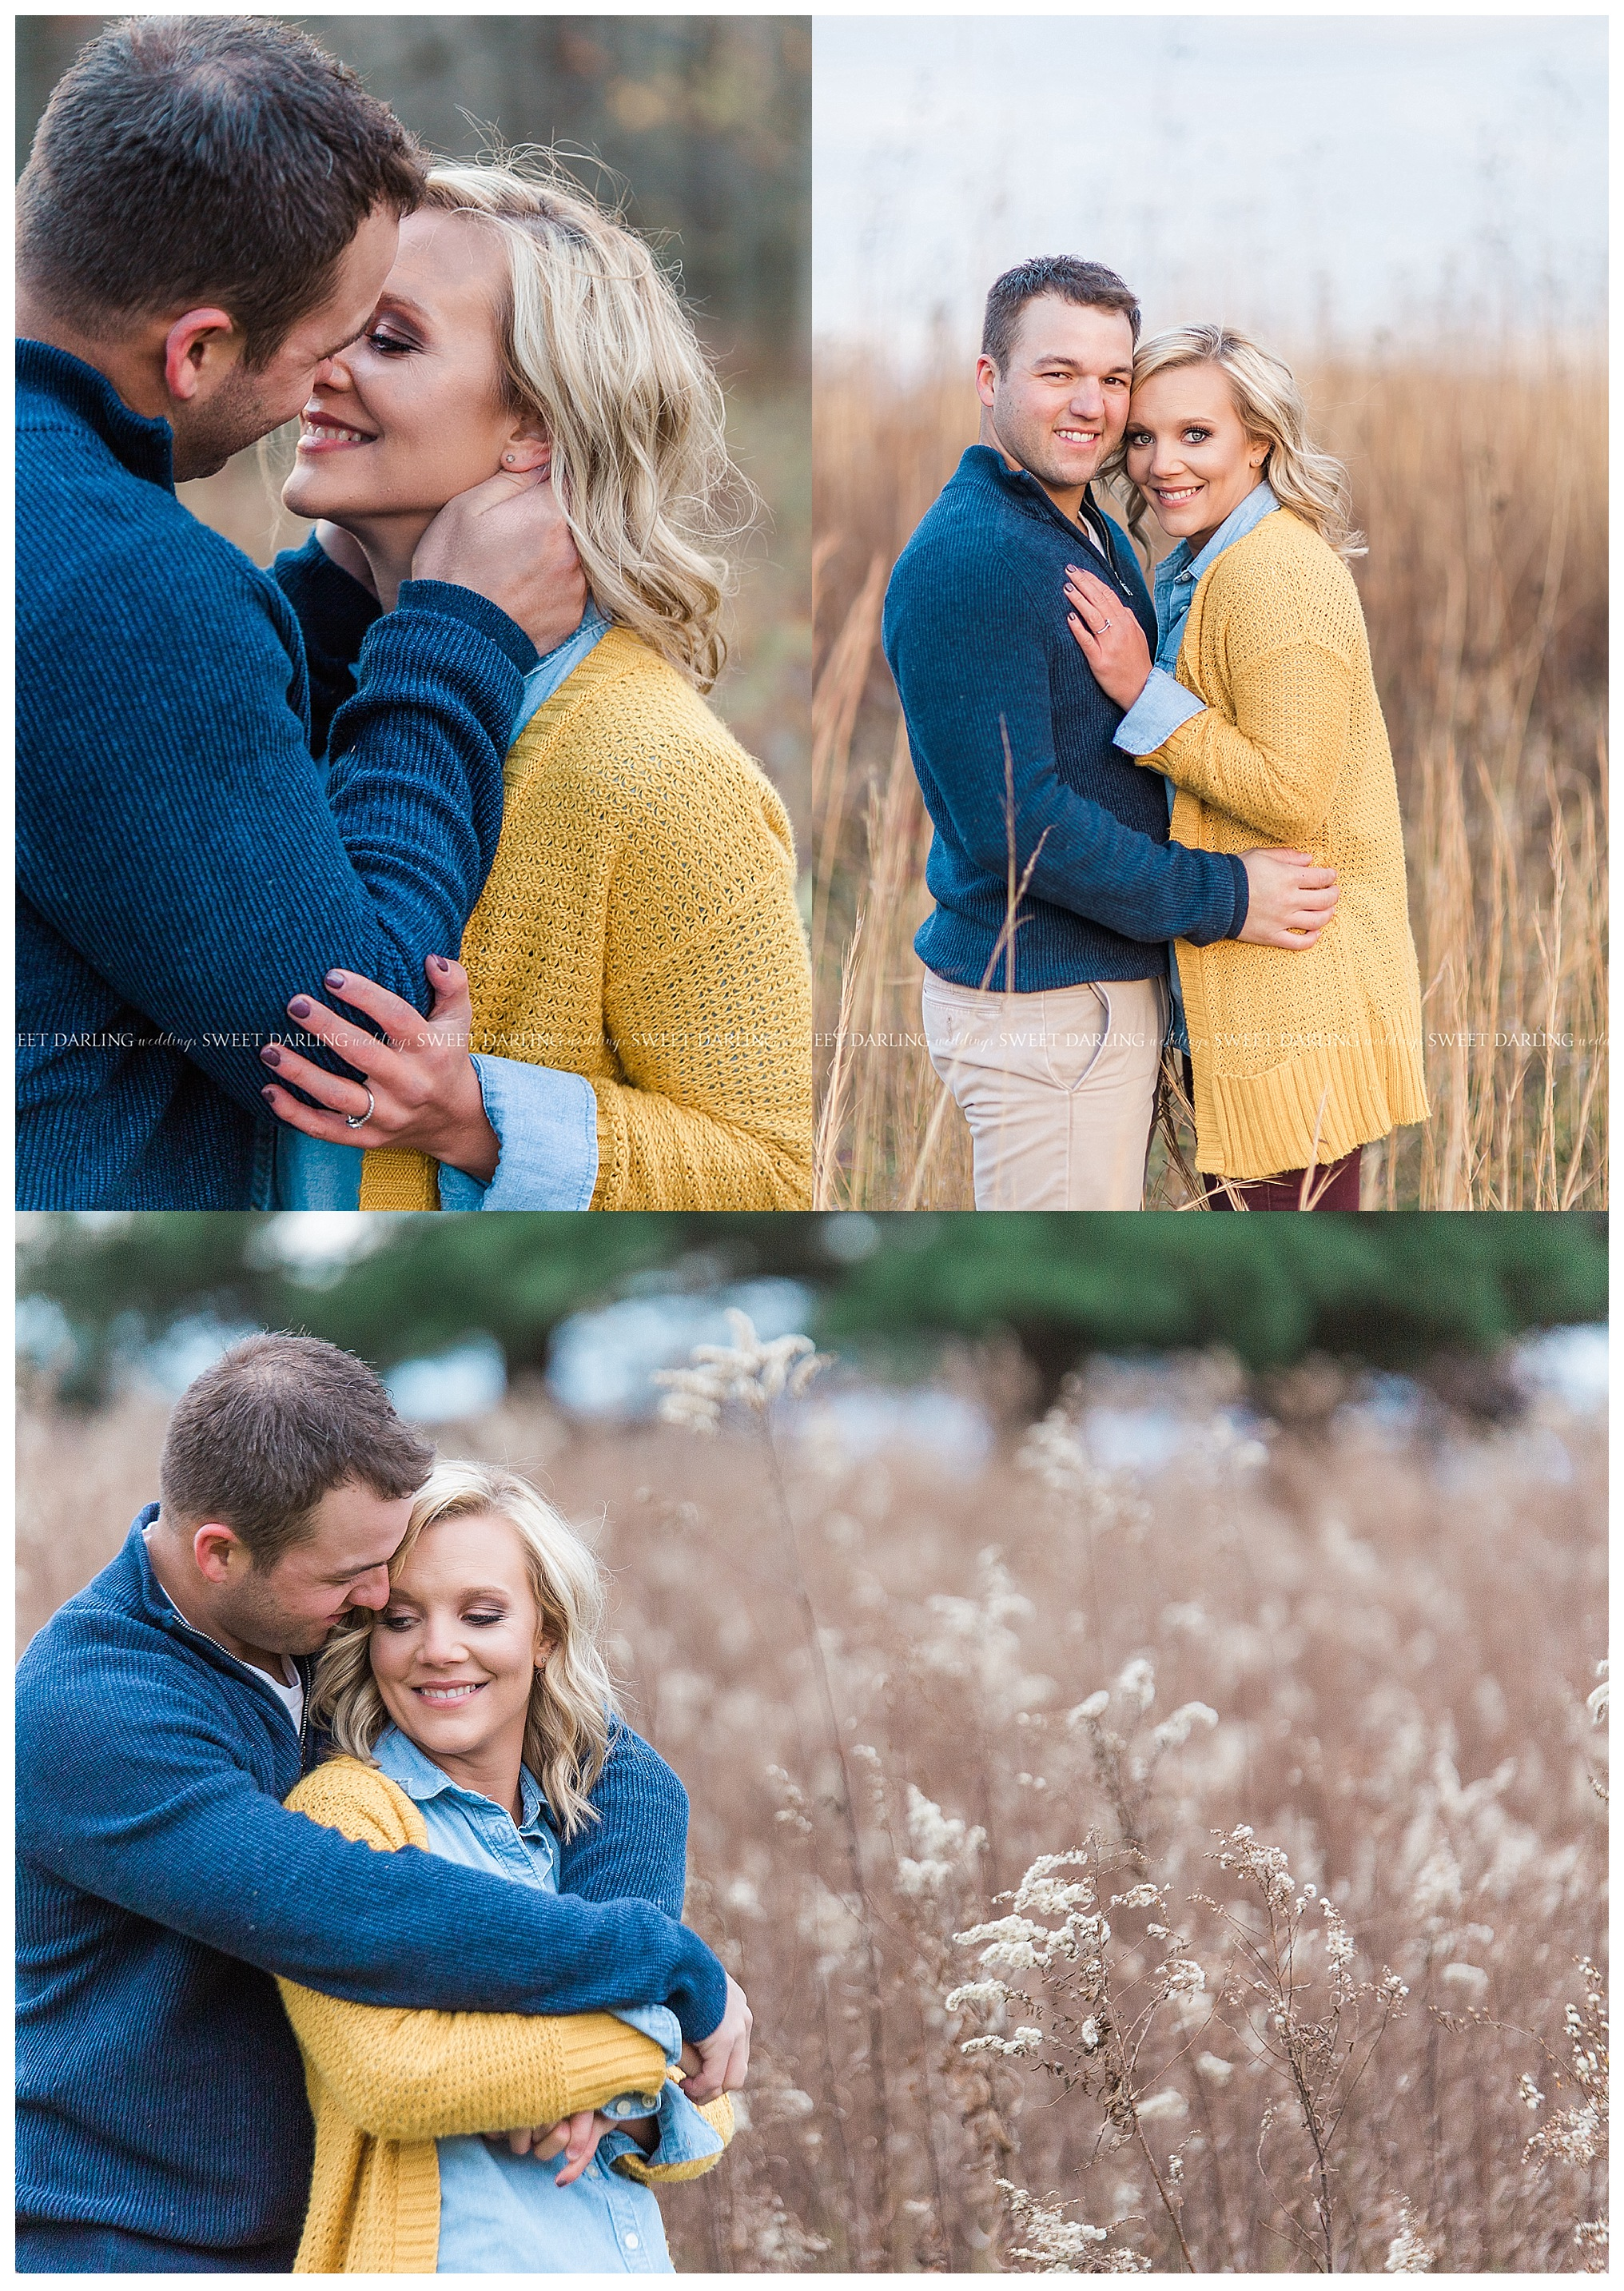 paxton-illinois-sweet-darling-weddings-photography-fall-engagement-session-ring-state-park_1013.jpg